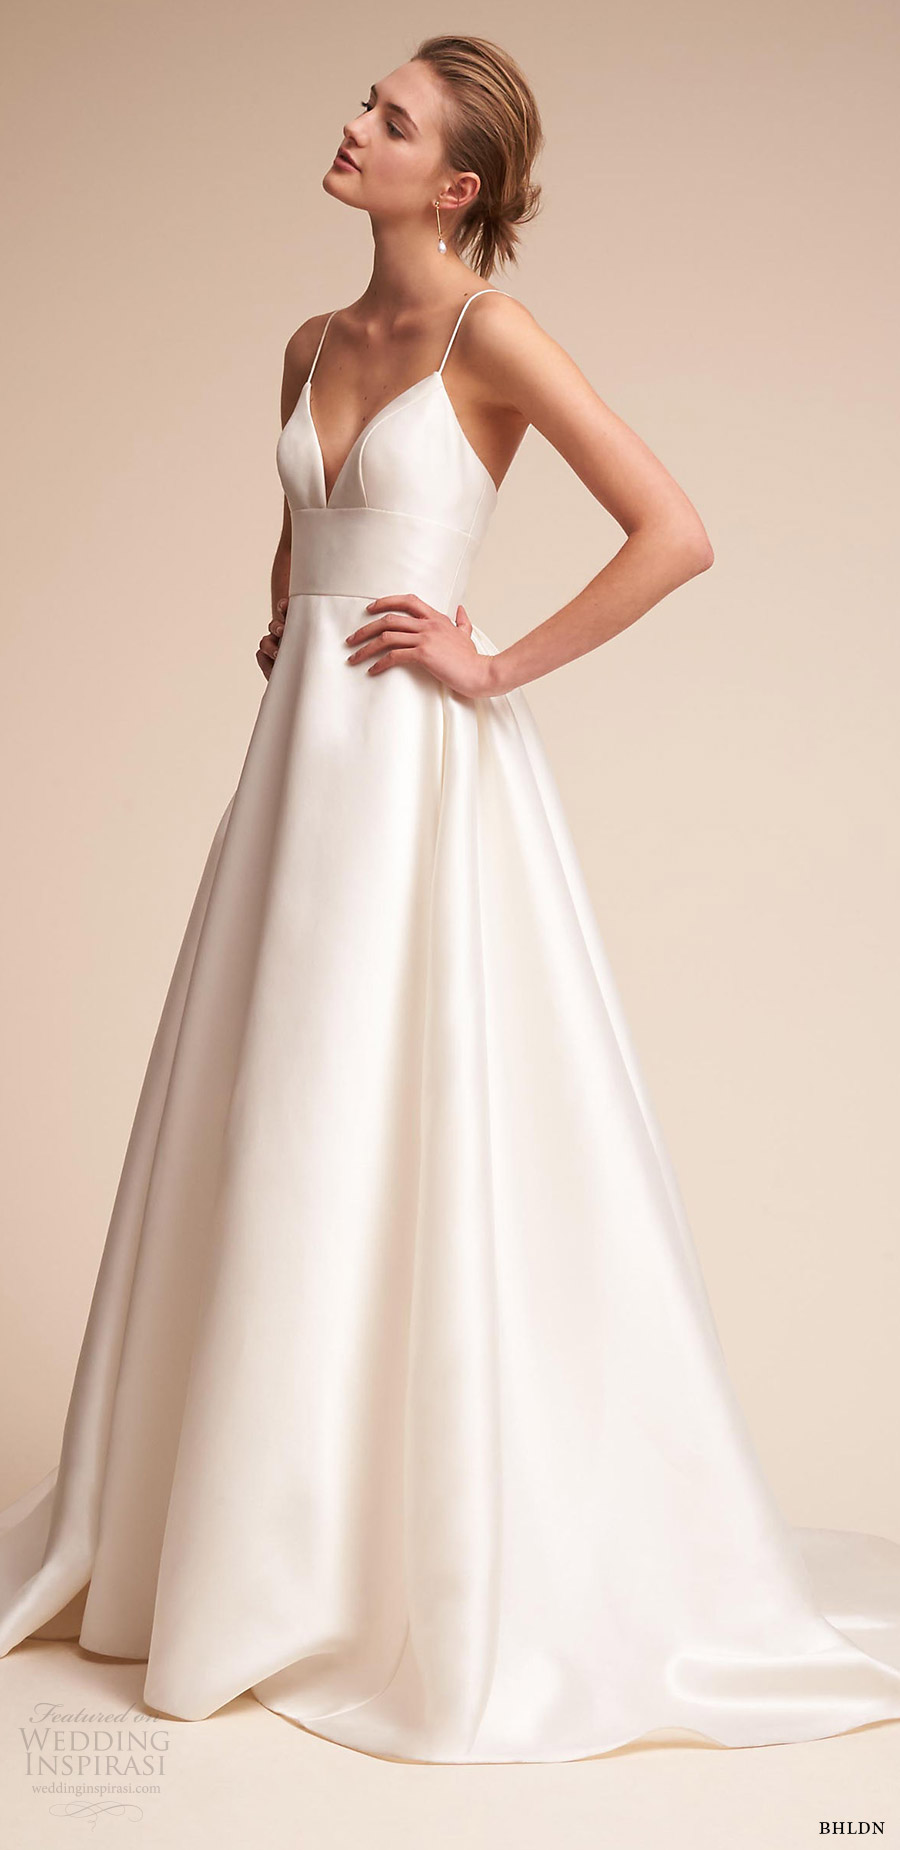 2018 wedding dress trends to love part 2 necklines and for Elegant ball gown wedding dresses